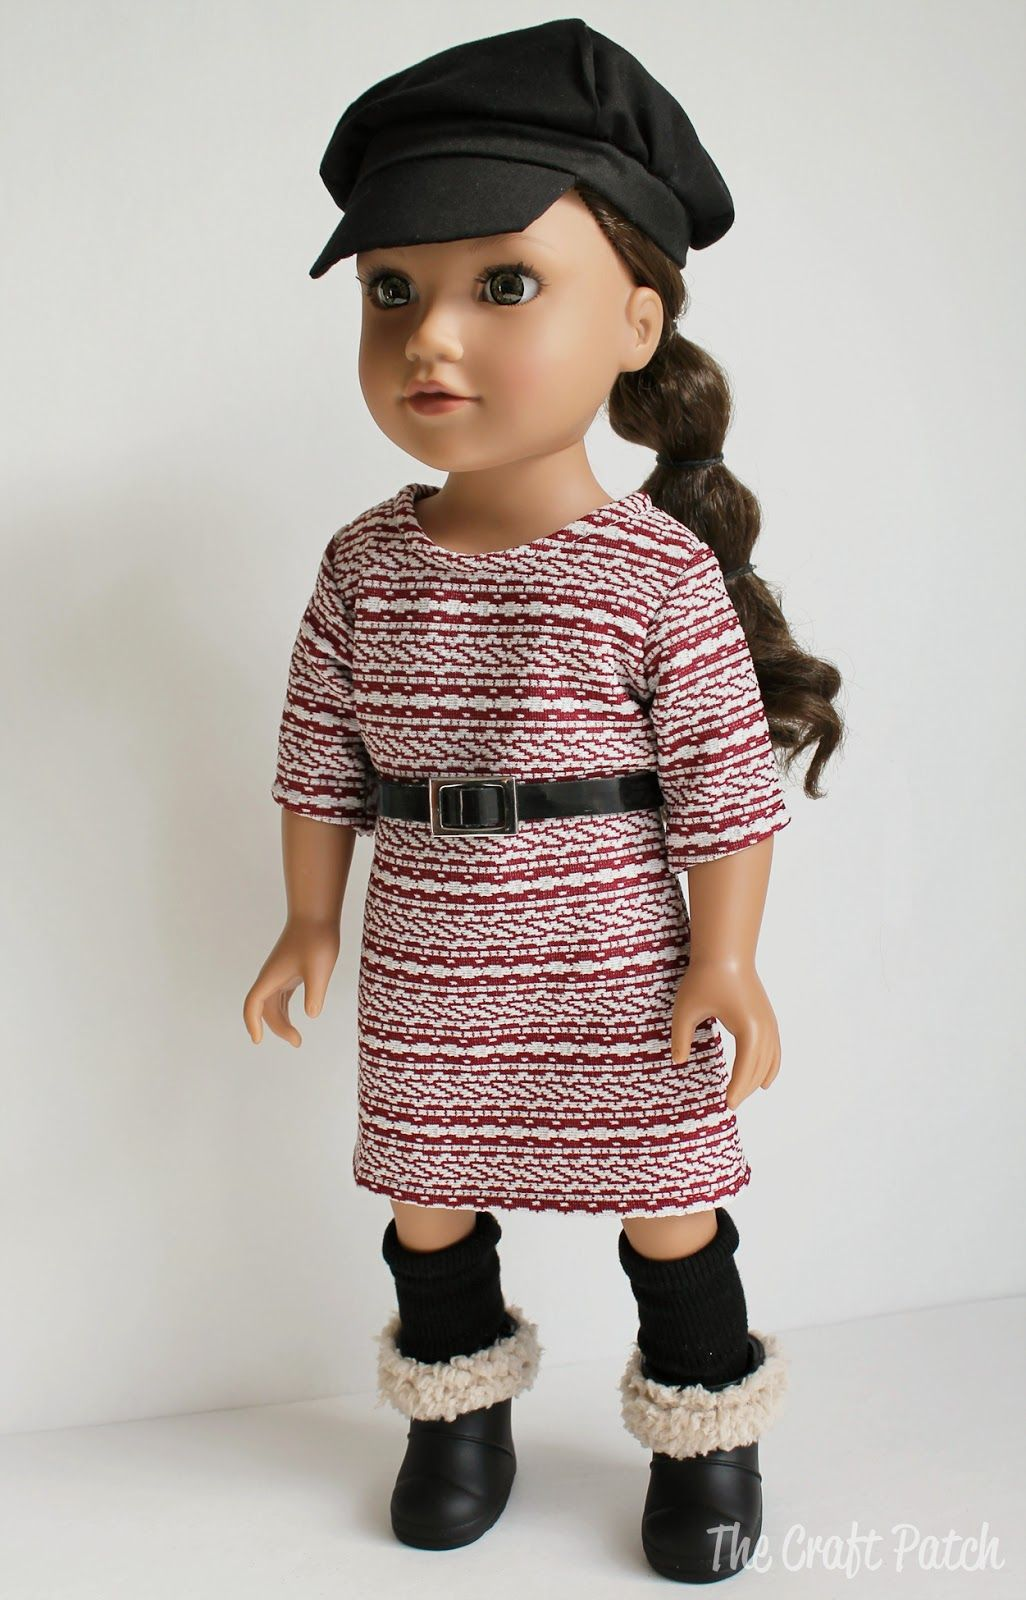 The Craft Patch: American Girl Doll Basic Knit Dress Pattern and ...